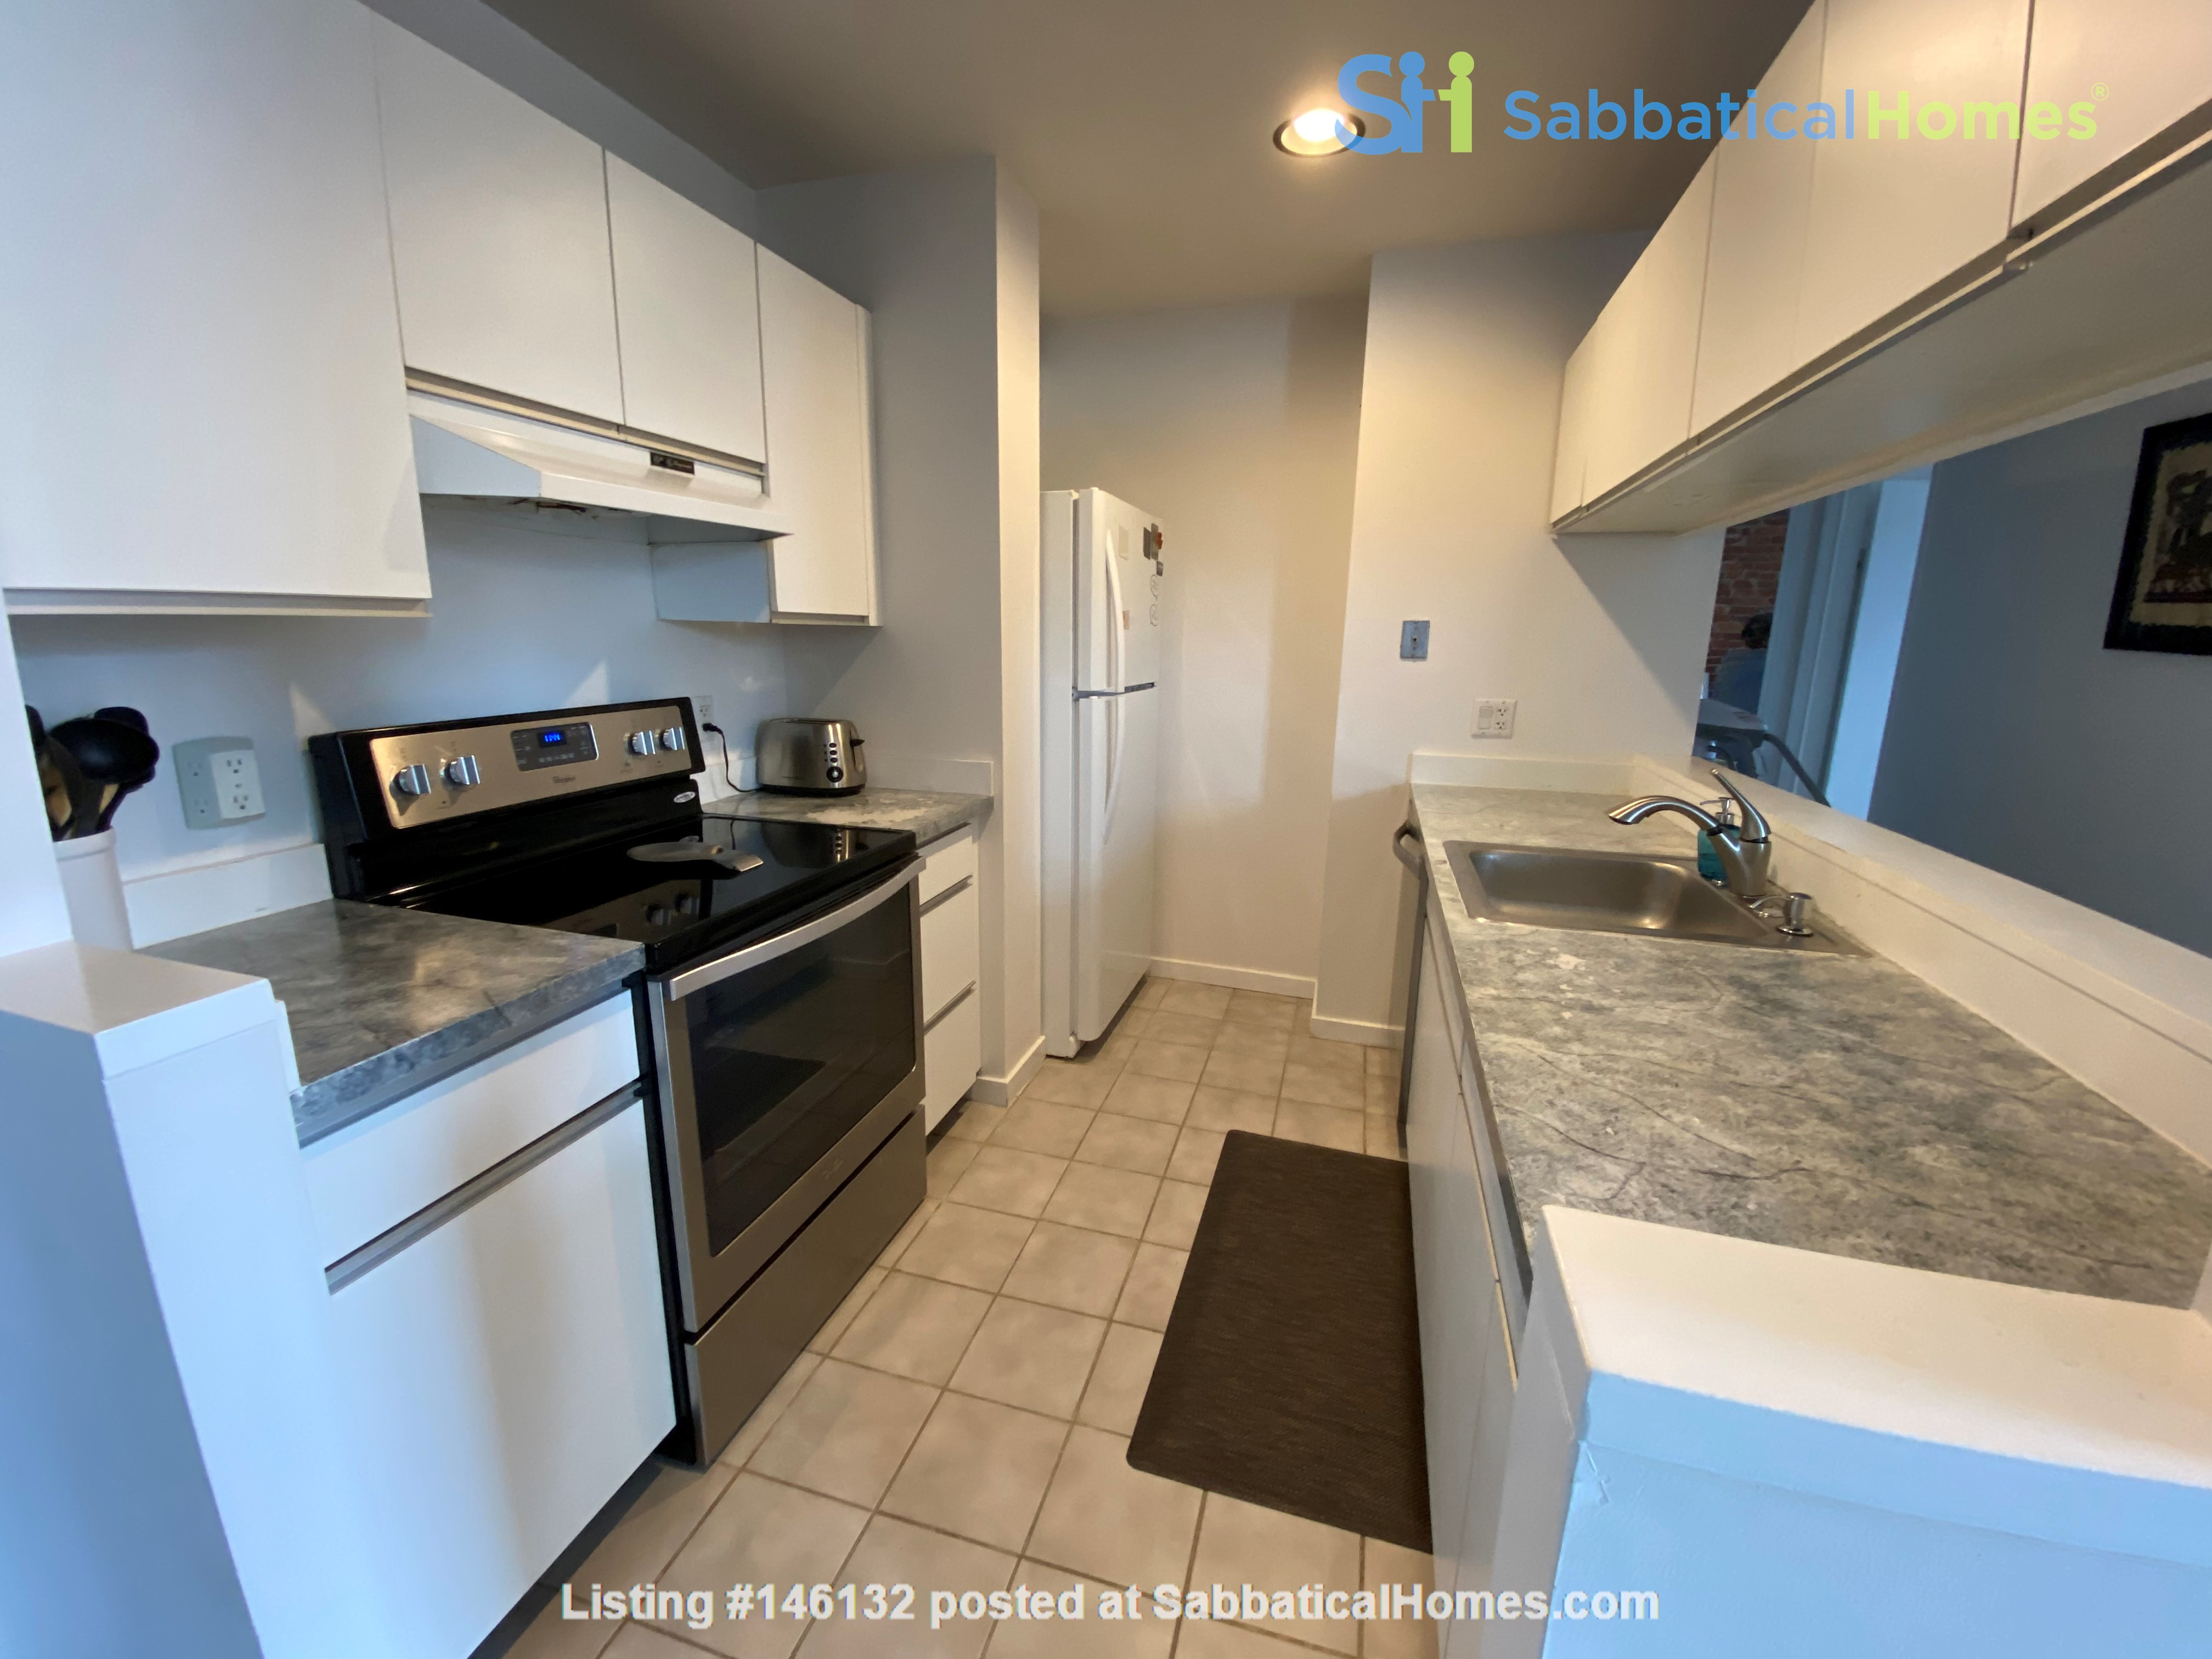 Sunny and bright old city 2 bedroom - near everything! Home Rental in Philadelphia 3